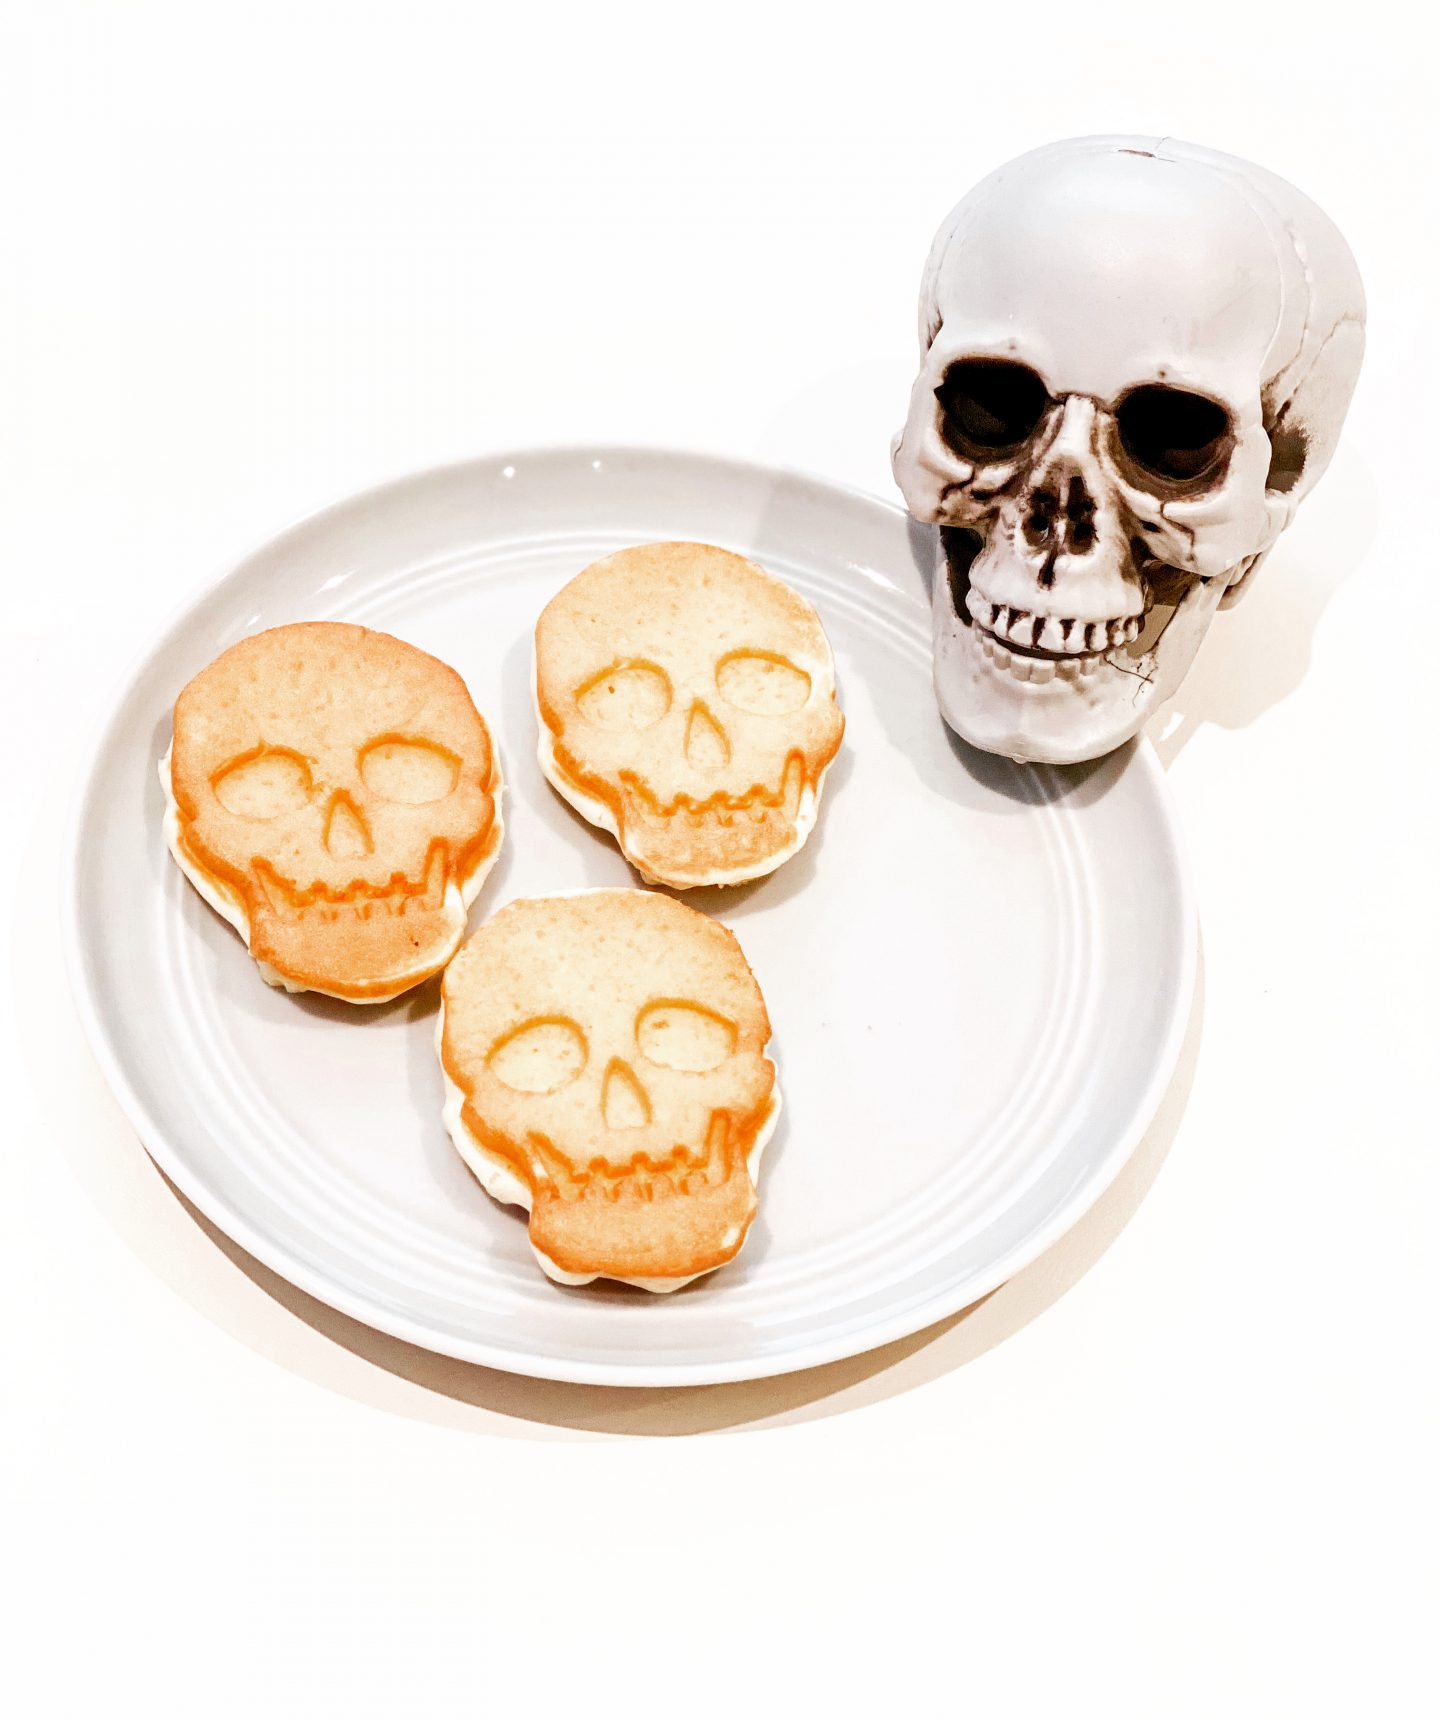 The cutest waffle irons for Halloween/Fall